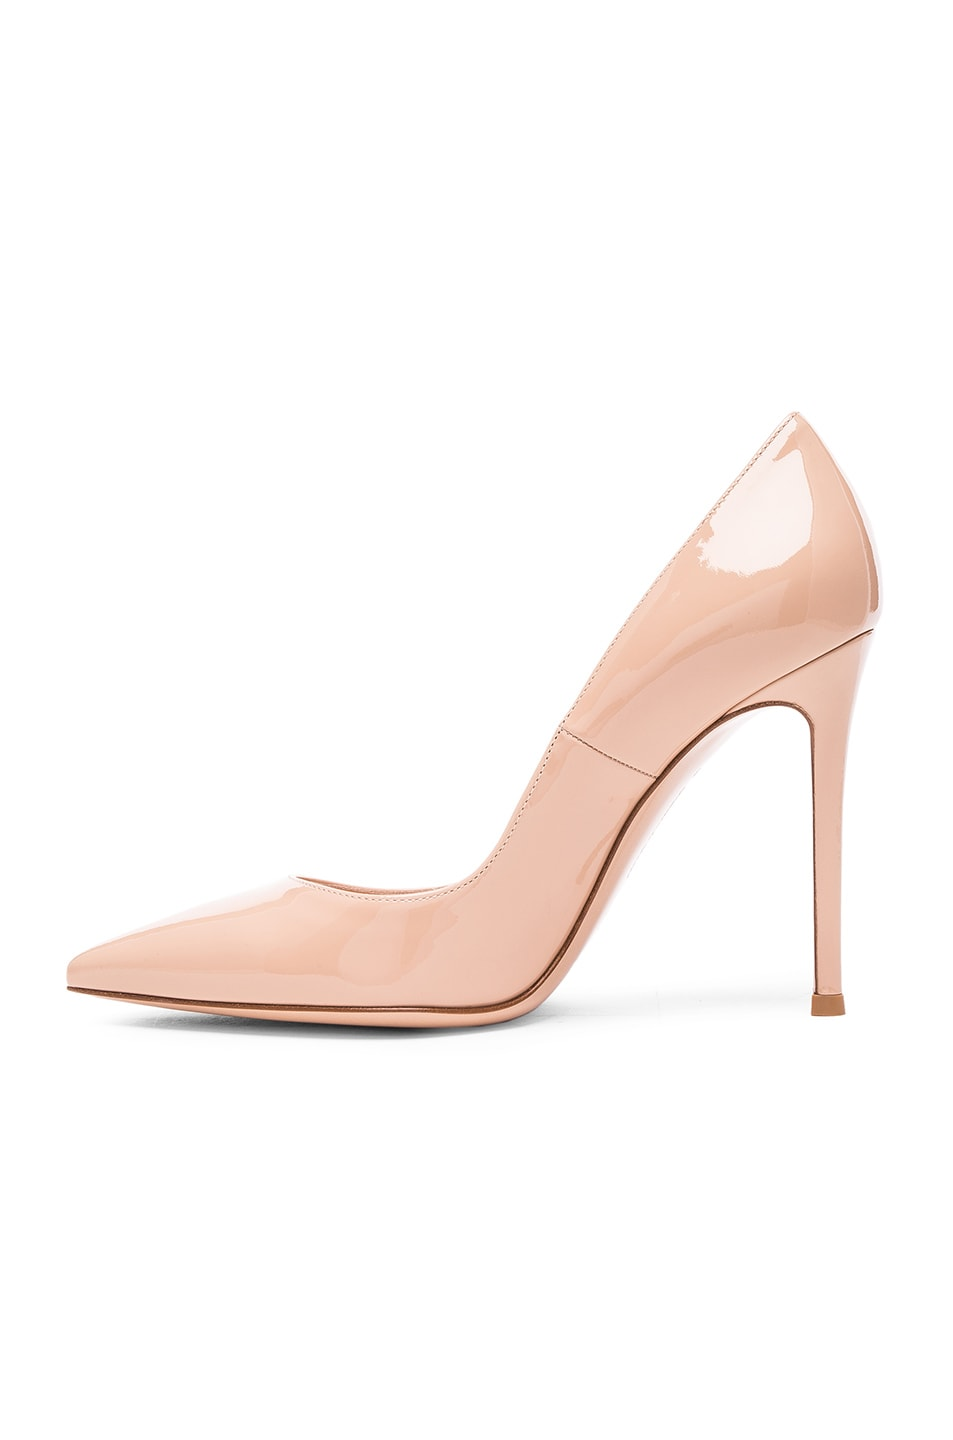 Image 5 of Gianvito Rossi Patent Leather Gianvito Pumps in Nude